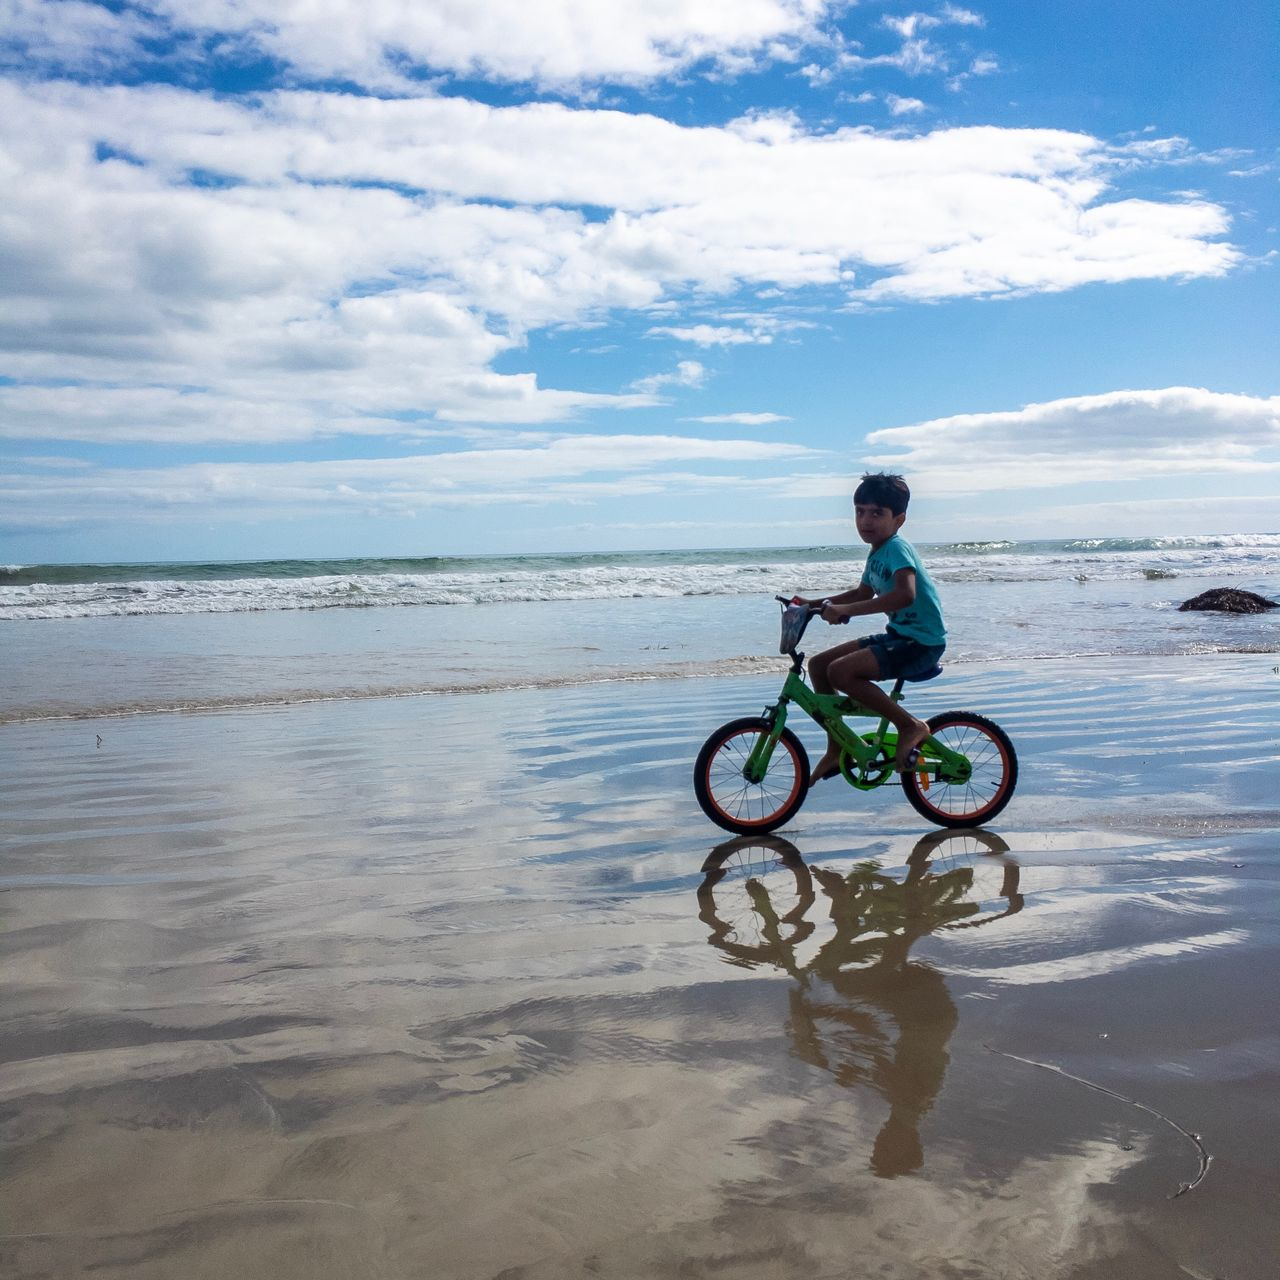 Side view of boy riding bicycle on shore at beach against sky